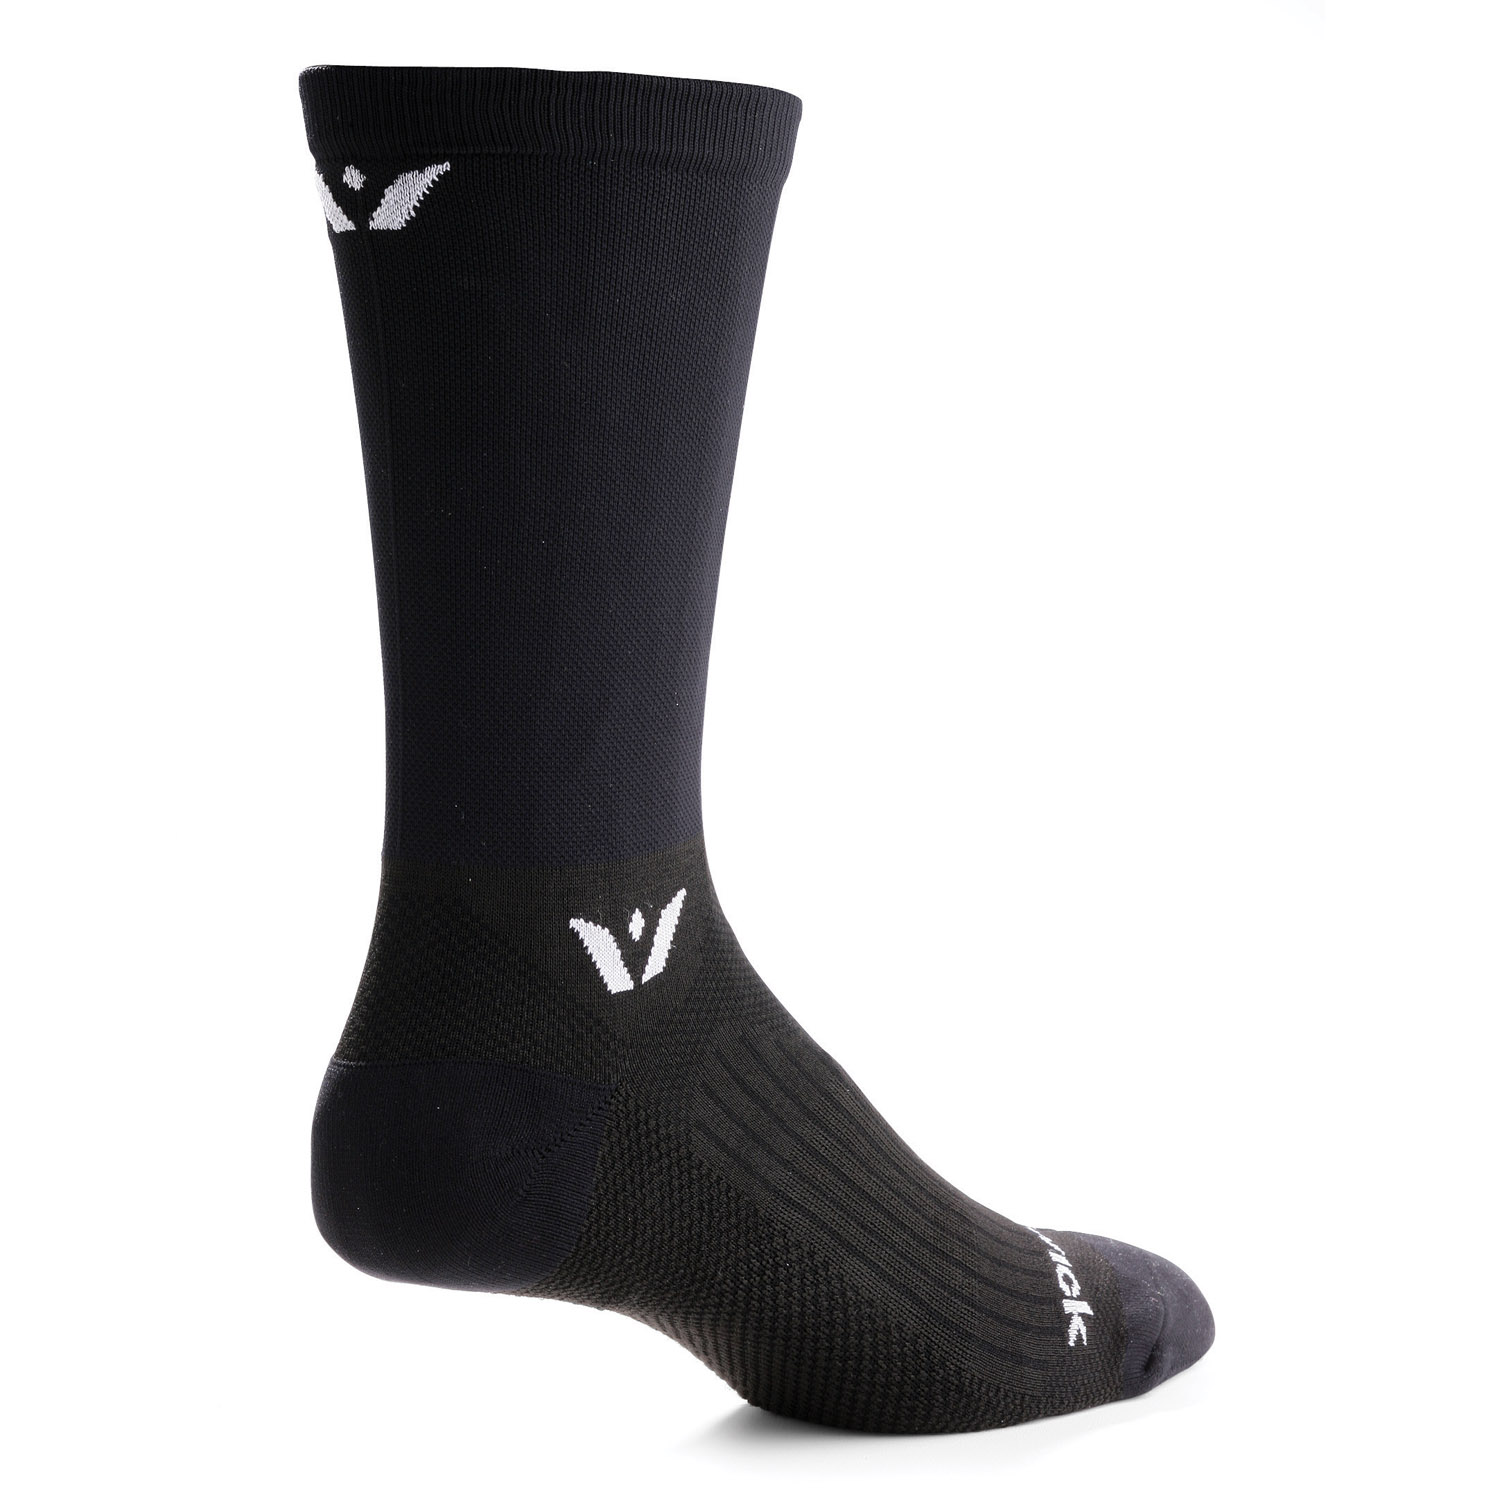 Swiftwick Performance Seven Mid Calf Uniform Socks